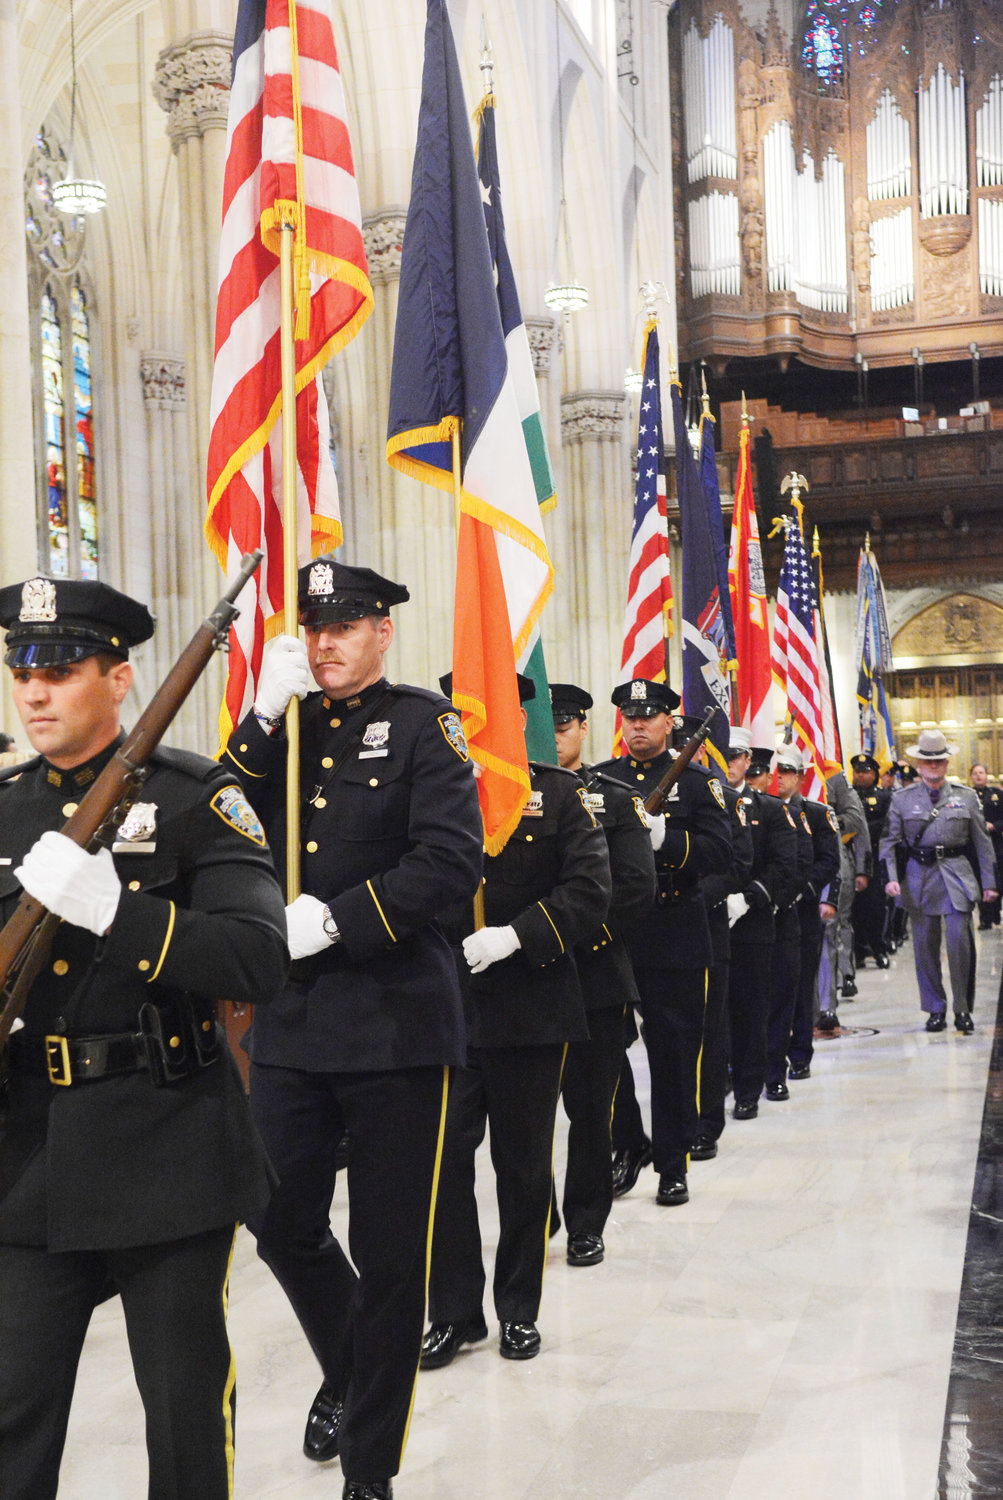 An NYPD honor guard leads the entrance procession.